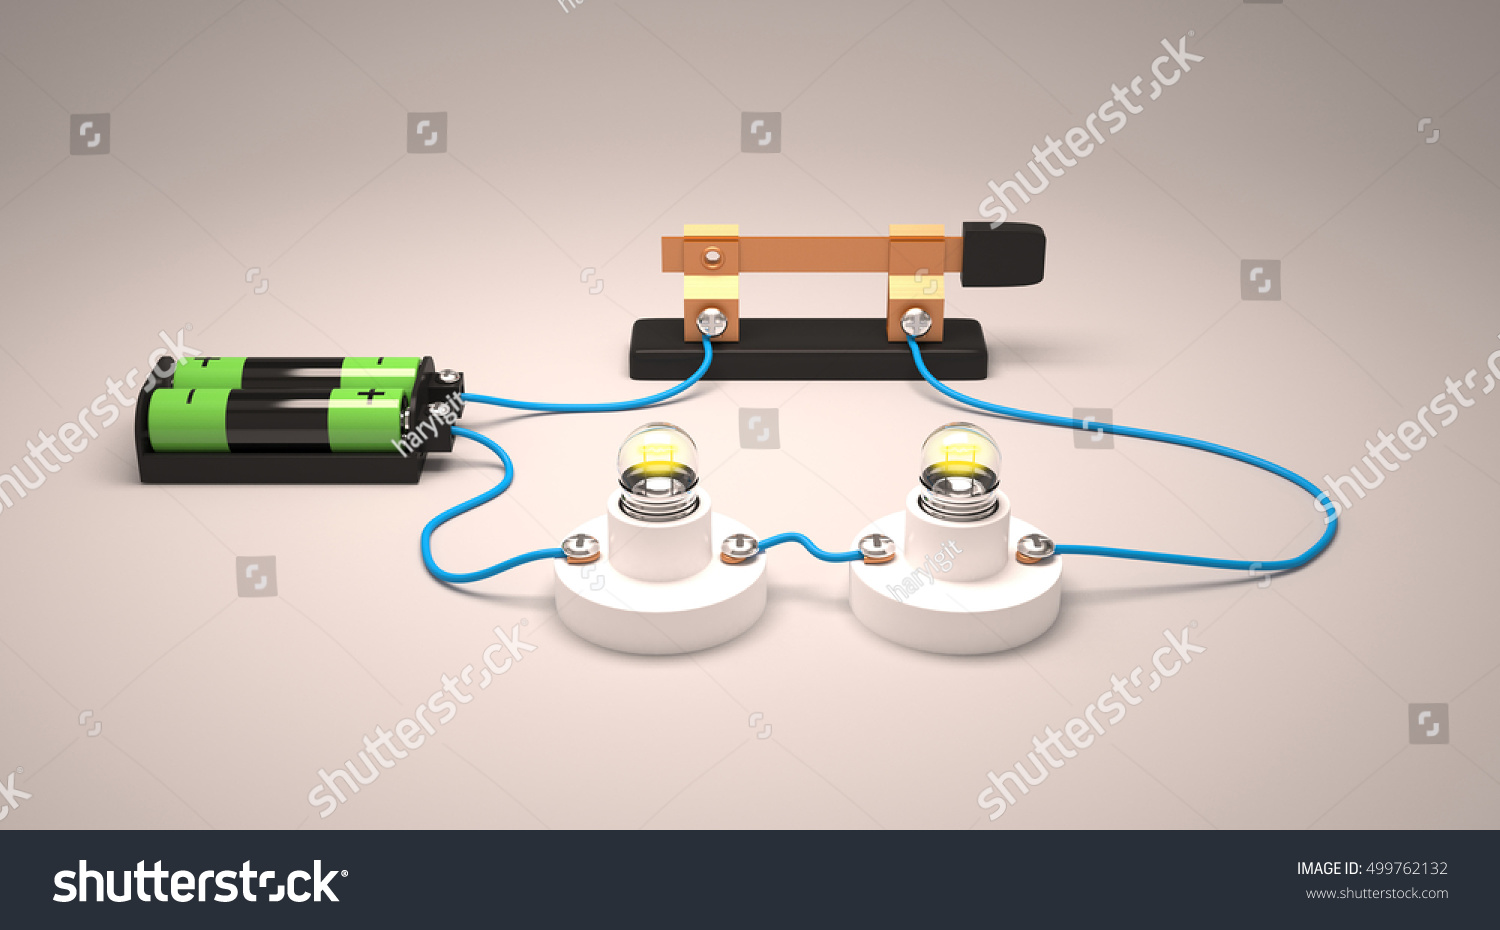 Simple Electric Circuitparallel 3 D Rendering Stock Illustration Electrical Wiring 3d